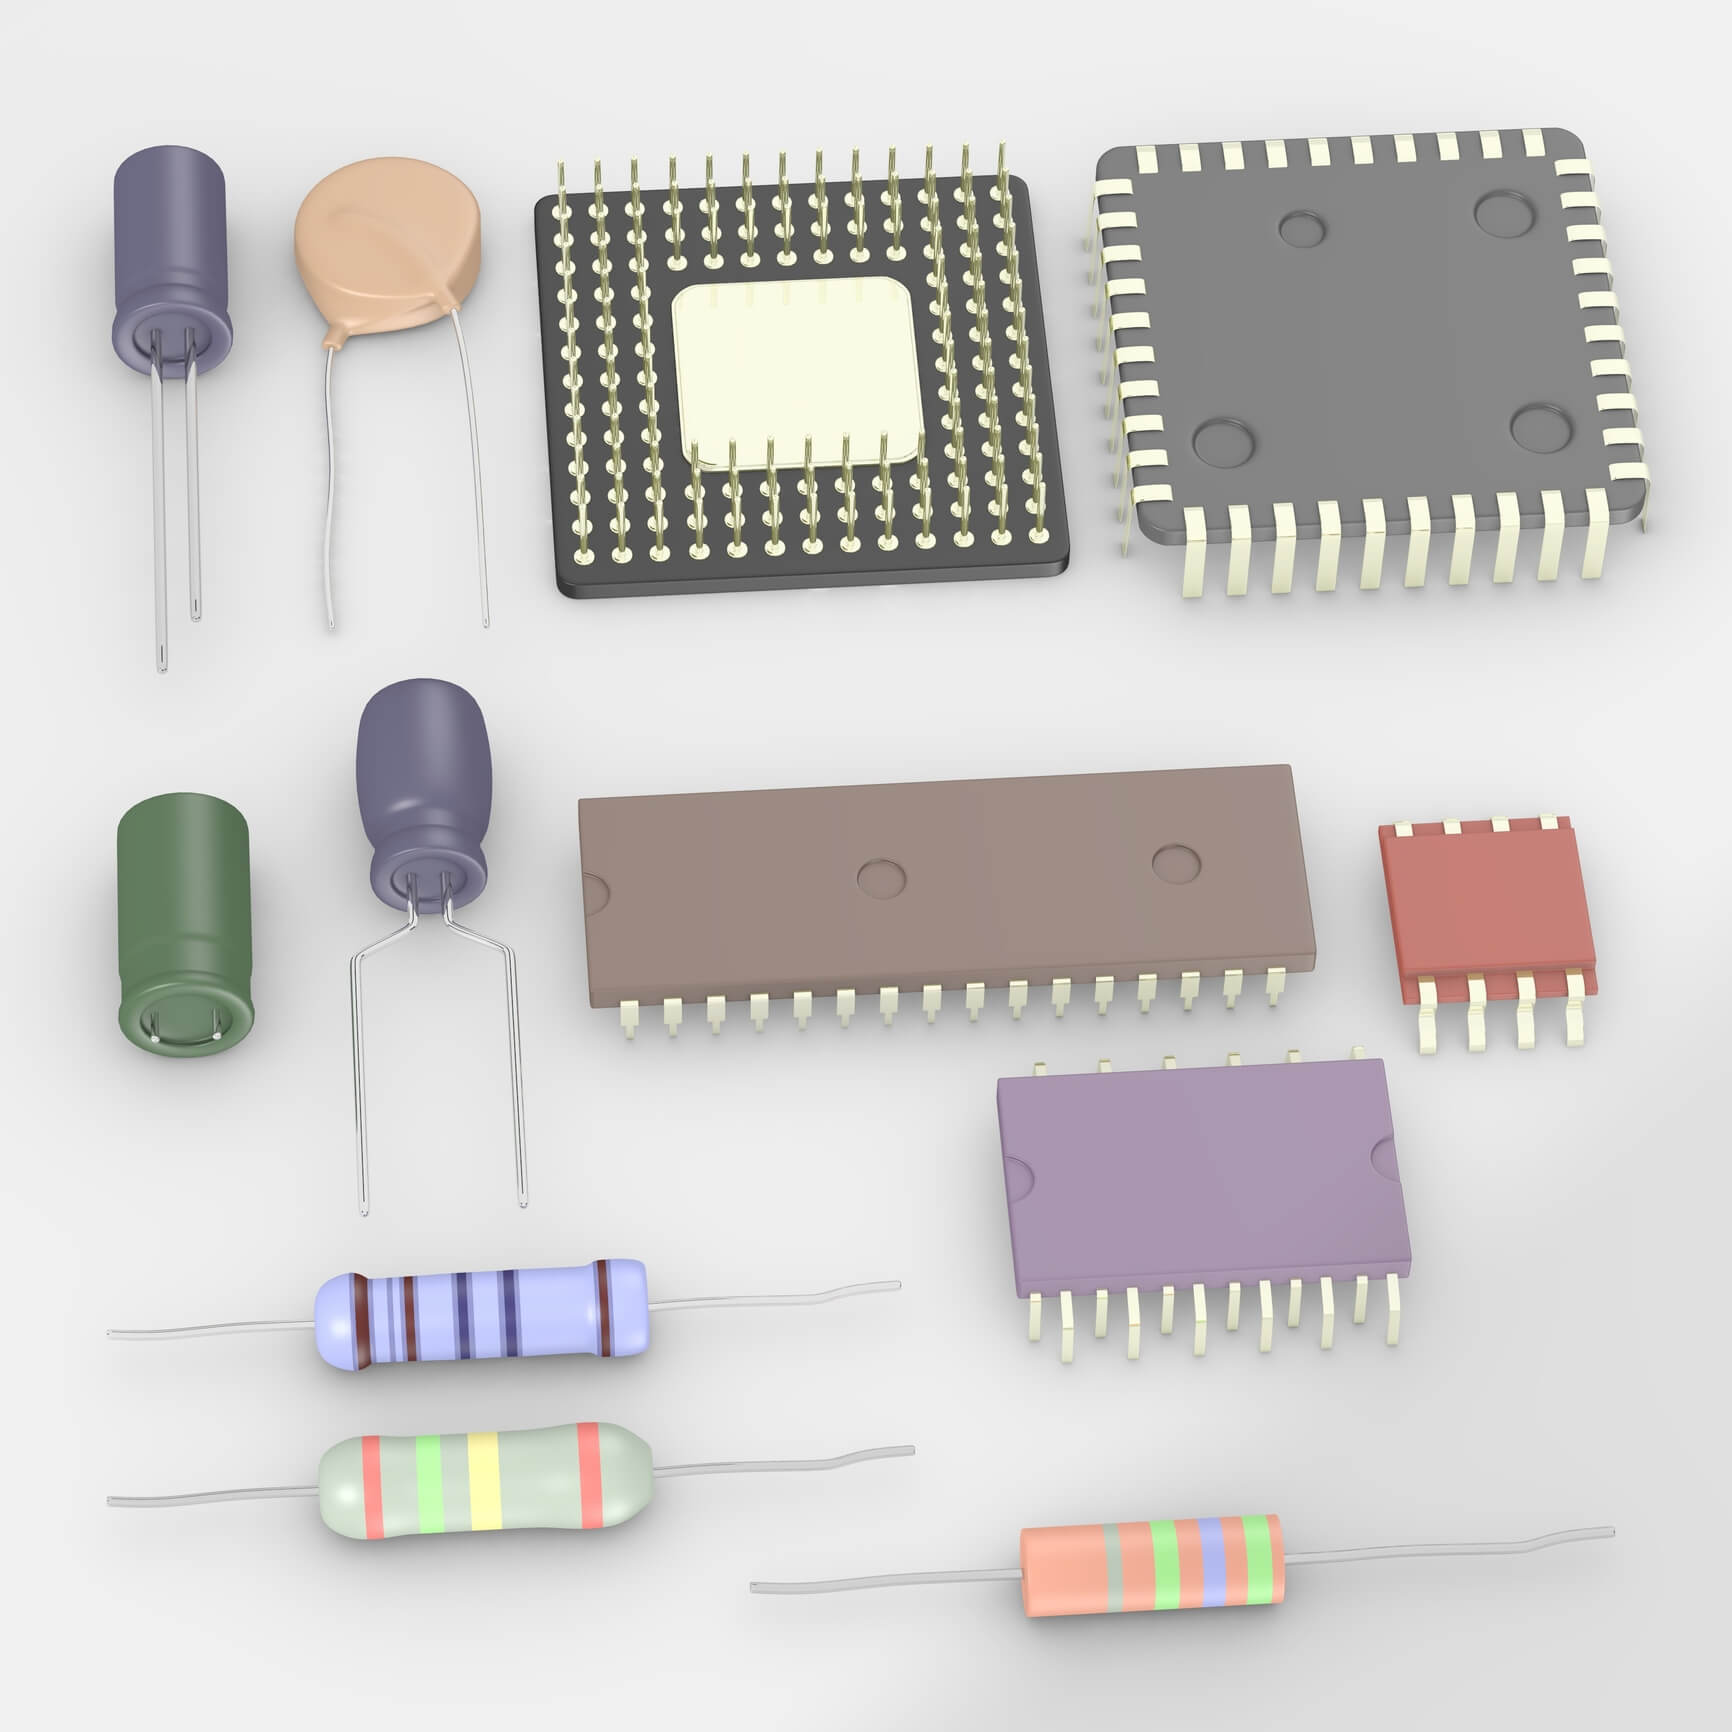 Distributors and suppliers of all types of electronic components